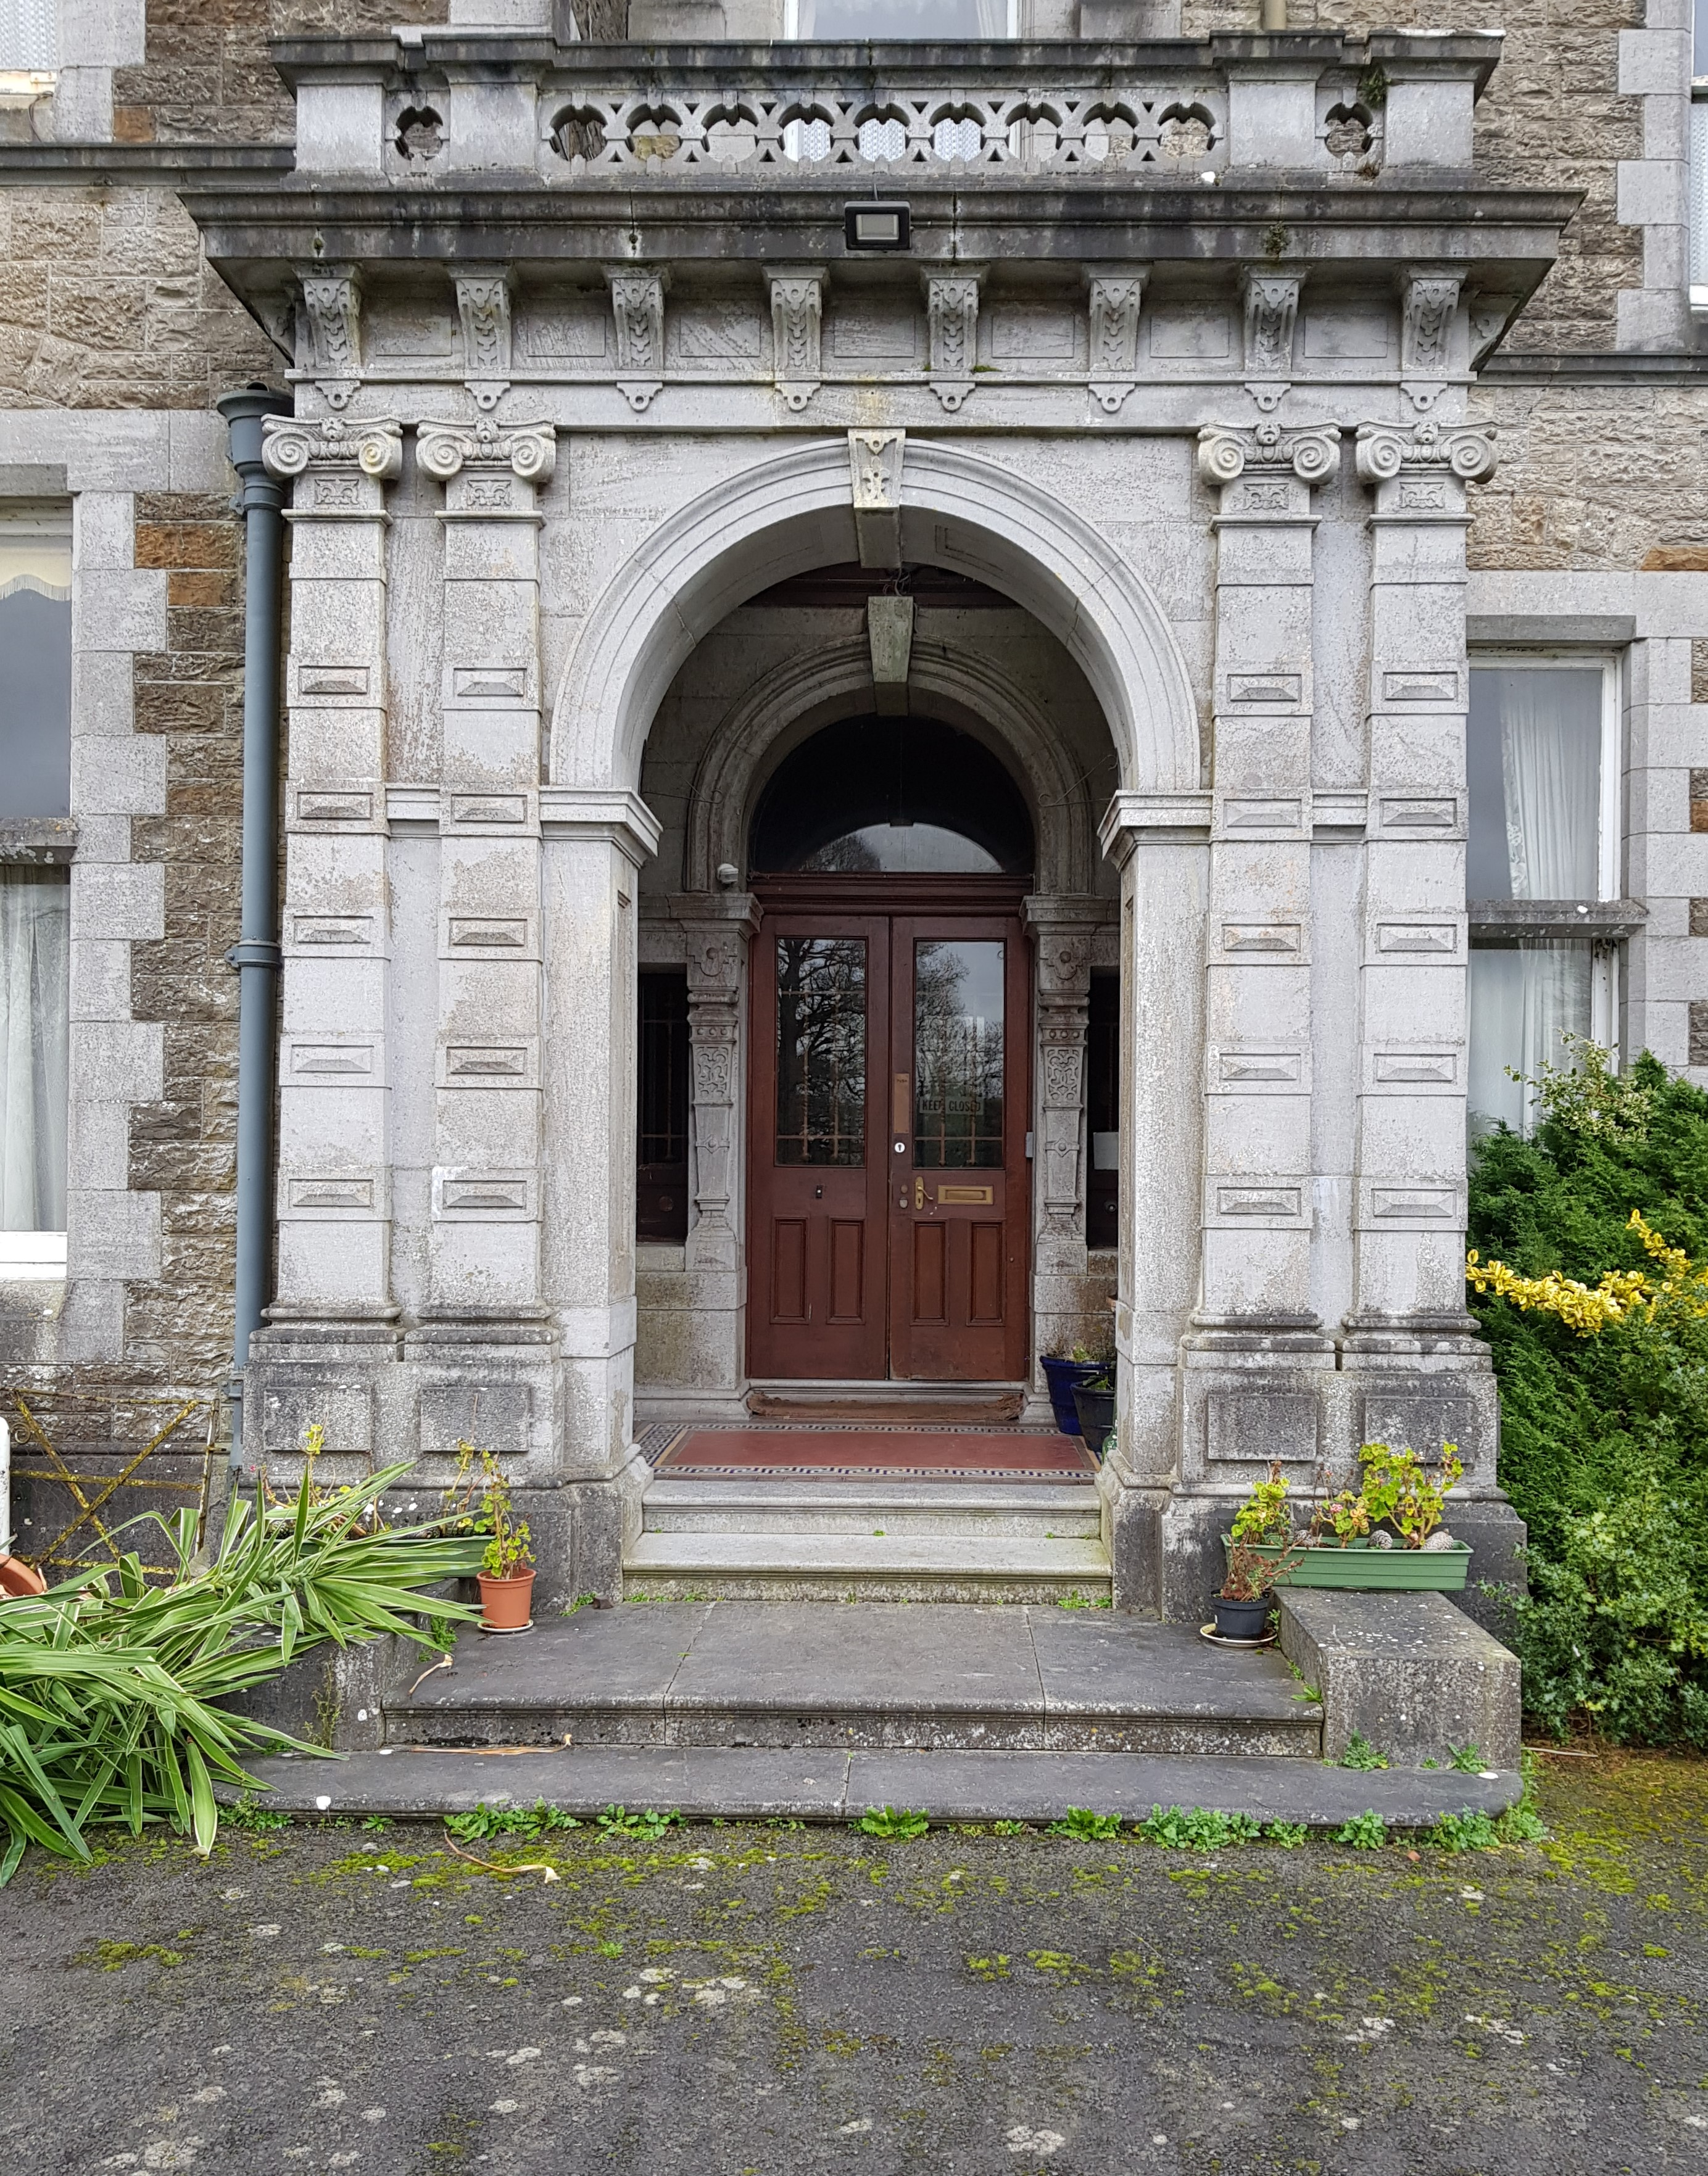 Italian war hero and diplomat made his home in Meath